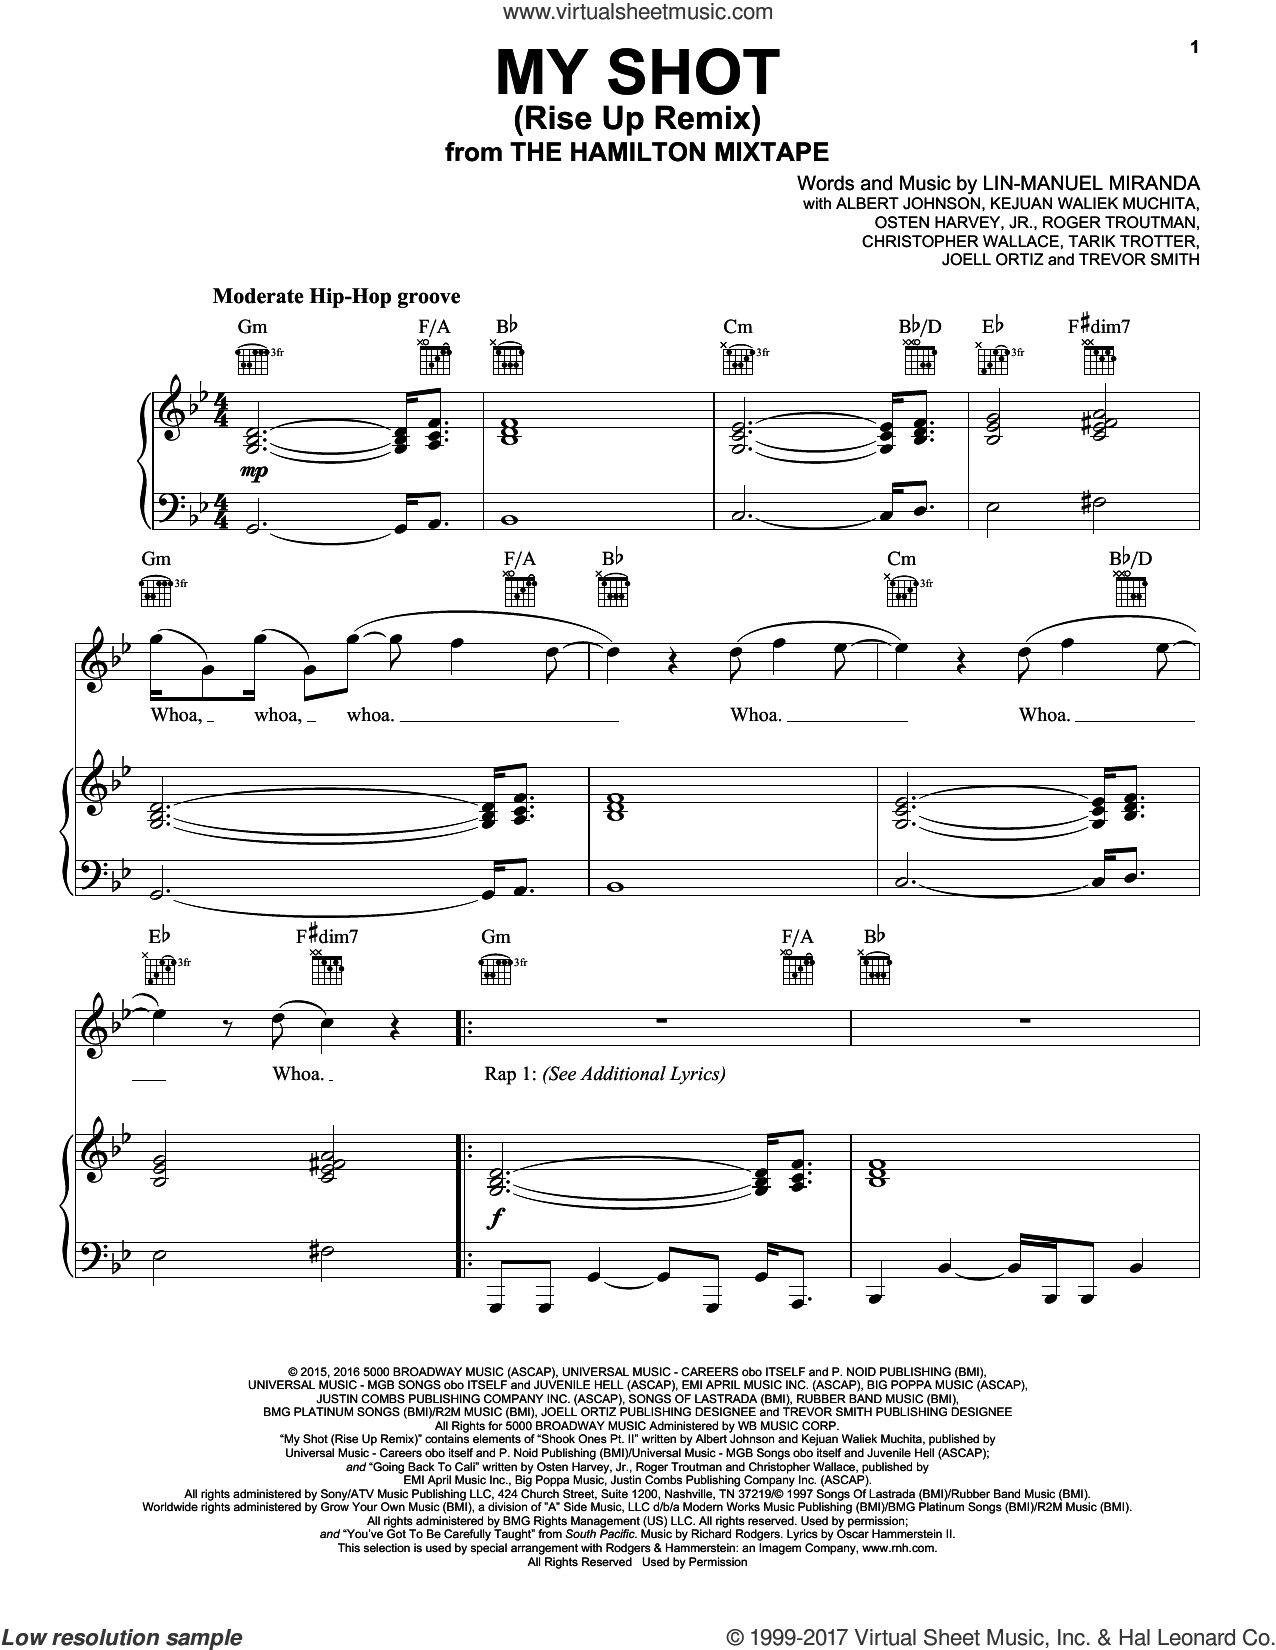 My Shot (Rise Up Remix) sheet music for voice, piano or guitar by Lin-Manuel Miranda, Busta Rhymes, Nate Ruess, The Roots, The Roots, Busta Rhymes, Joell Ortiz, Nate Ruess, Albert Johnson, Christopher Wallace, Joell Ortiz, Kejuan Waliek Muchita, Osten Harvey, Jr., Roger Troutman, Tarik Trotter and Trevor Smith, intermediate skill level